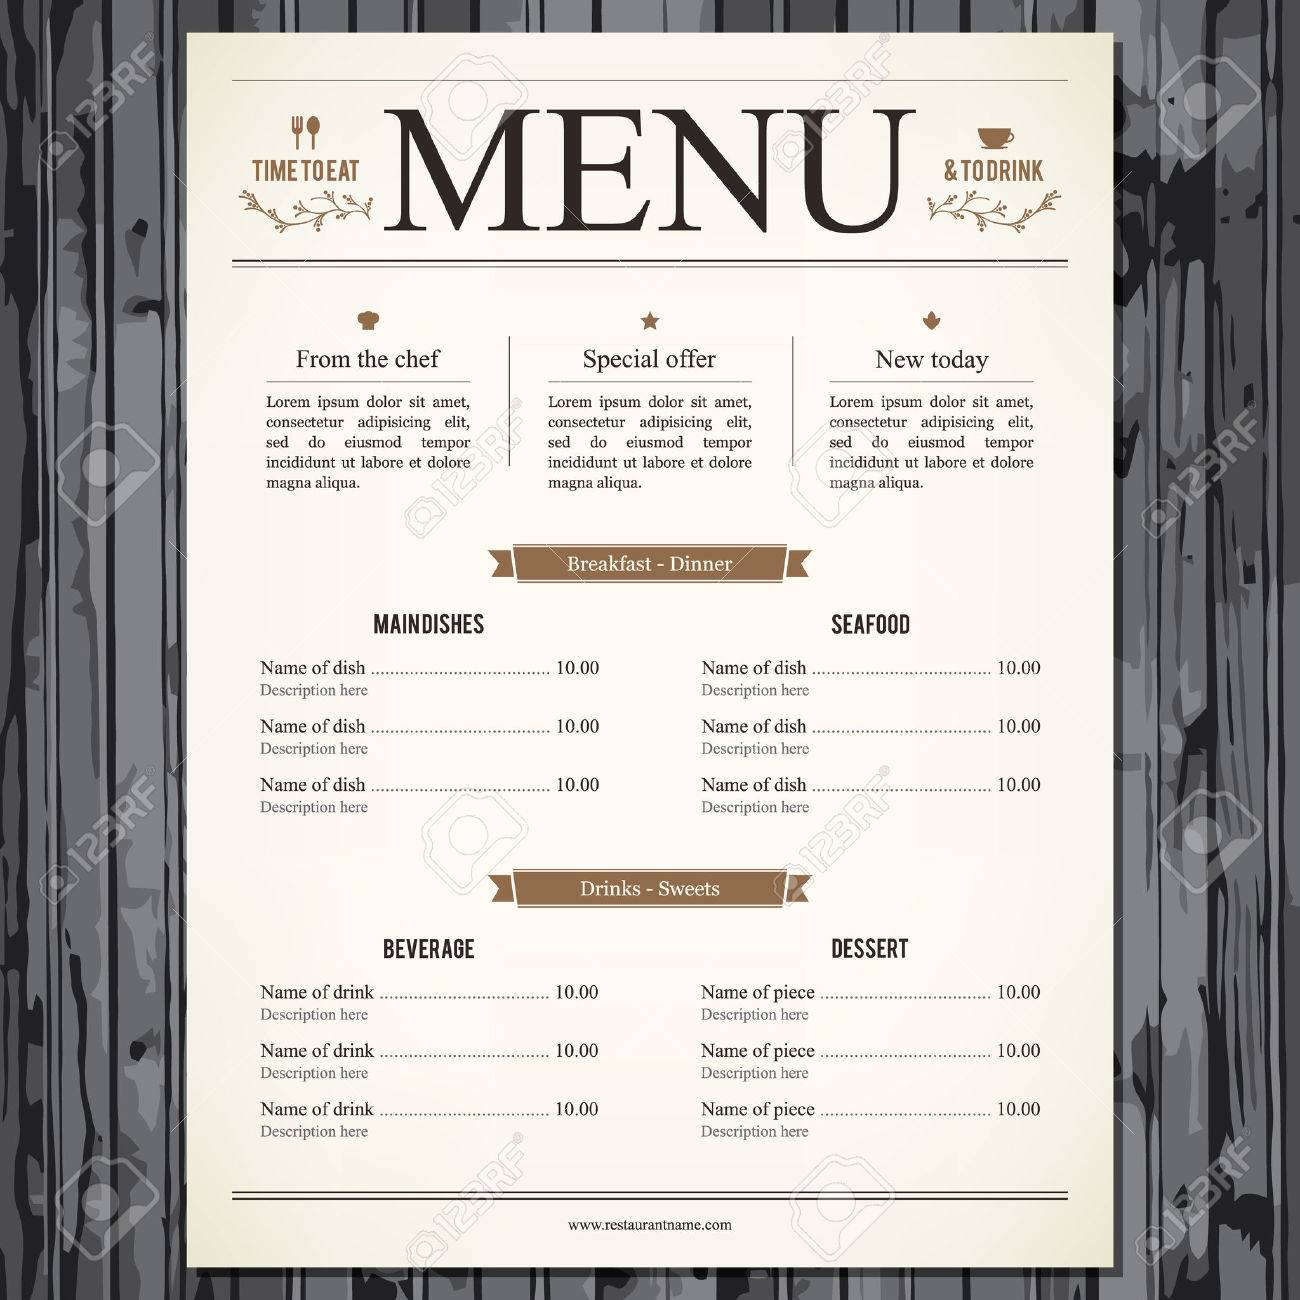 Restaurant Menu Design Royalty Free Cliparts Vectors And Stock Illustration Image 29138539